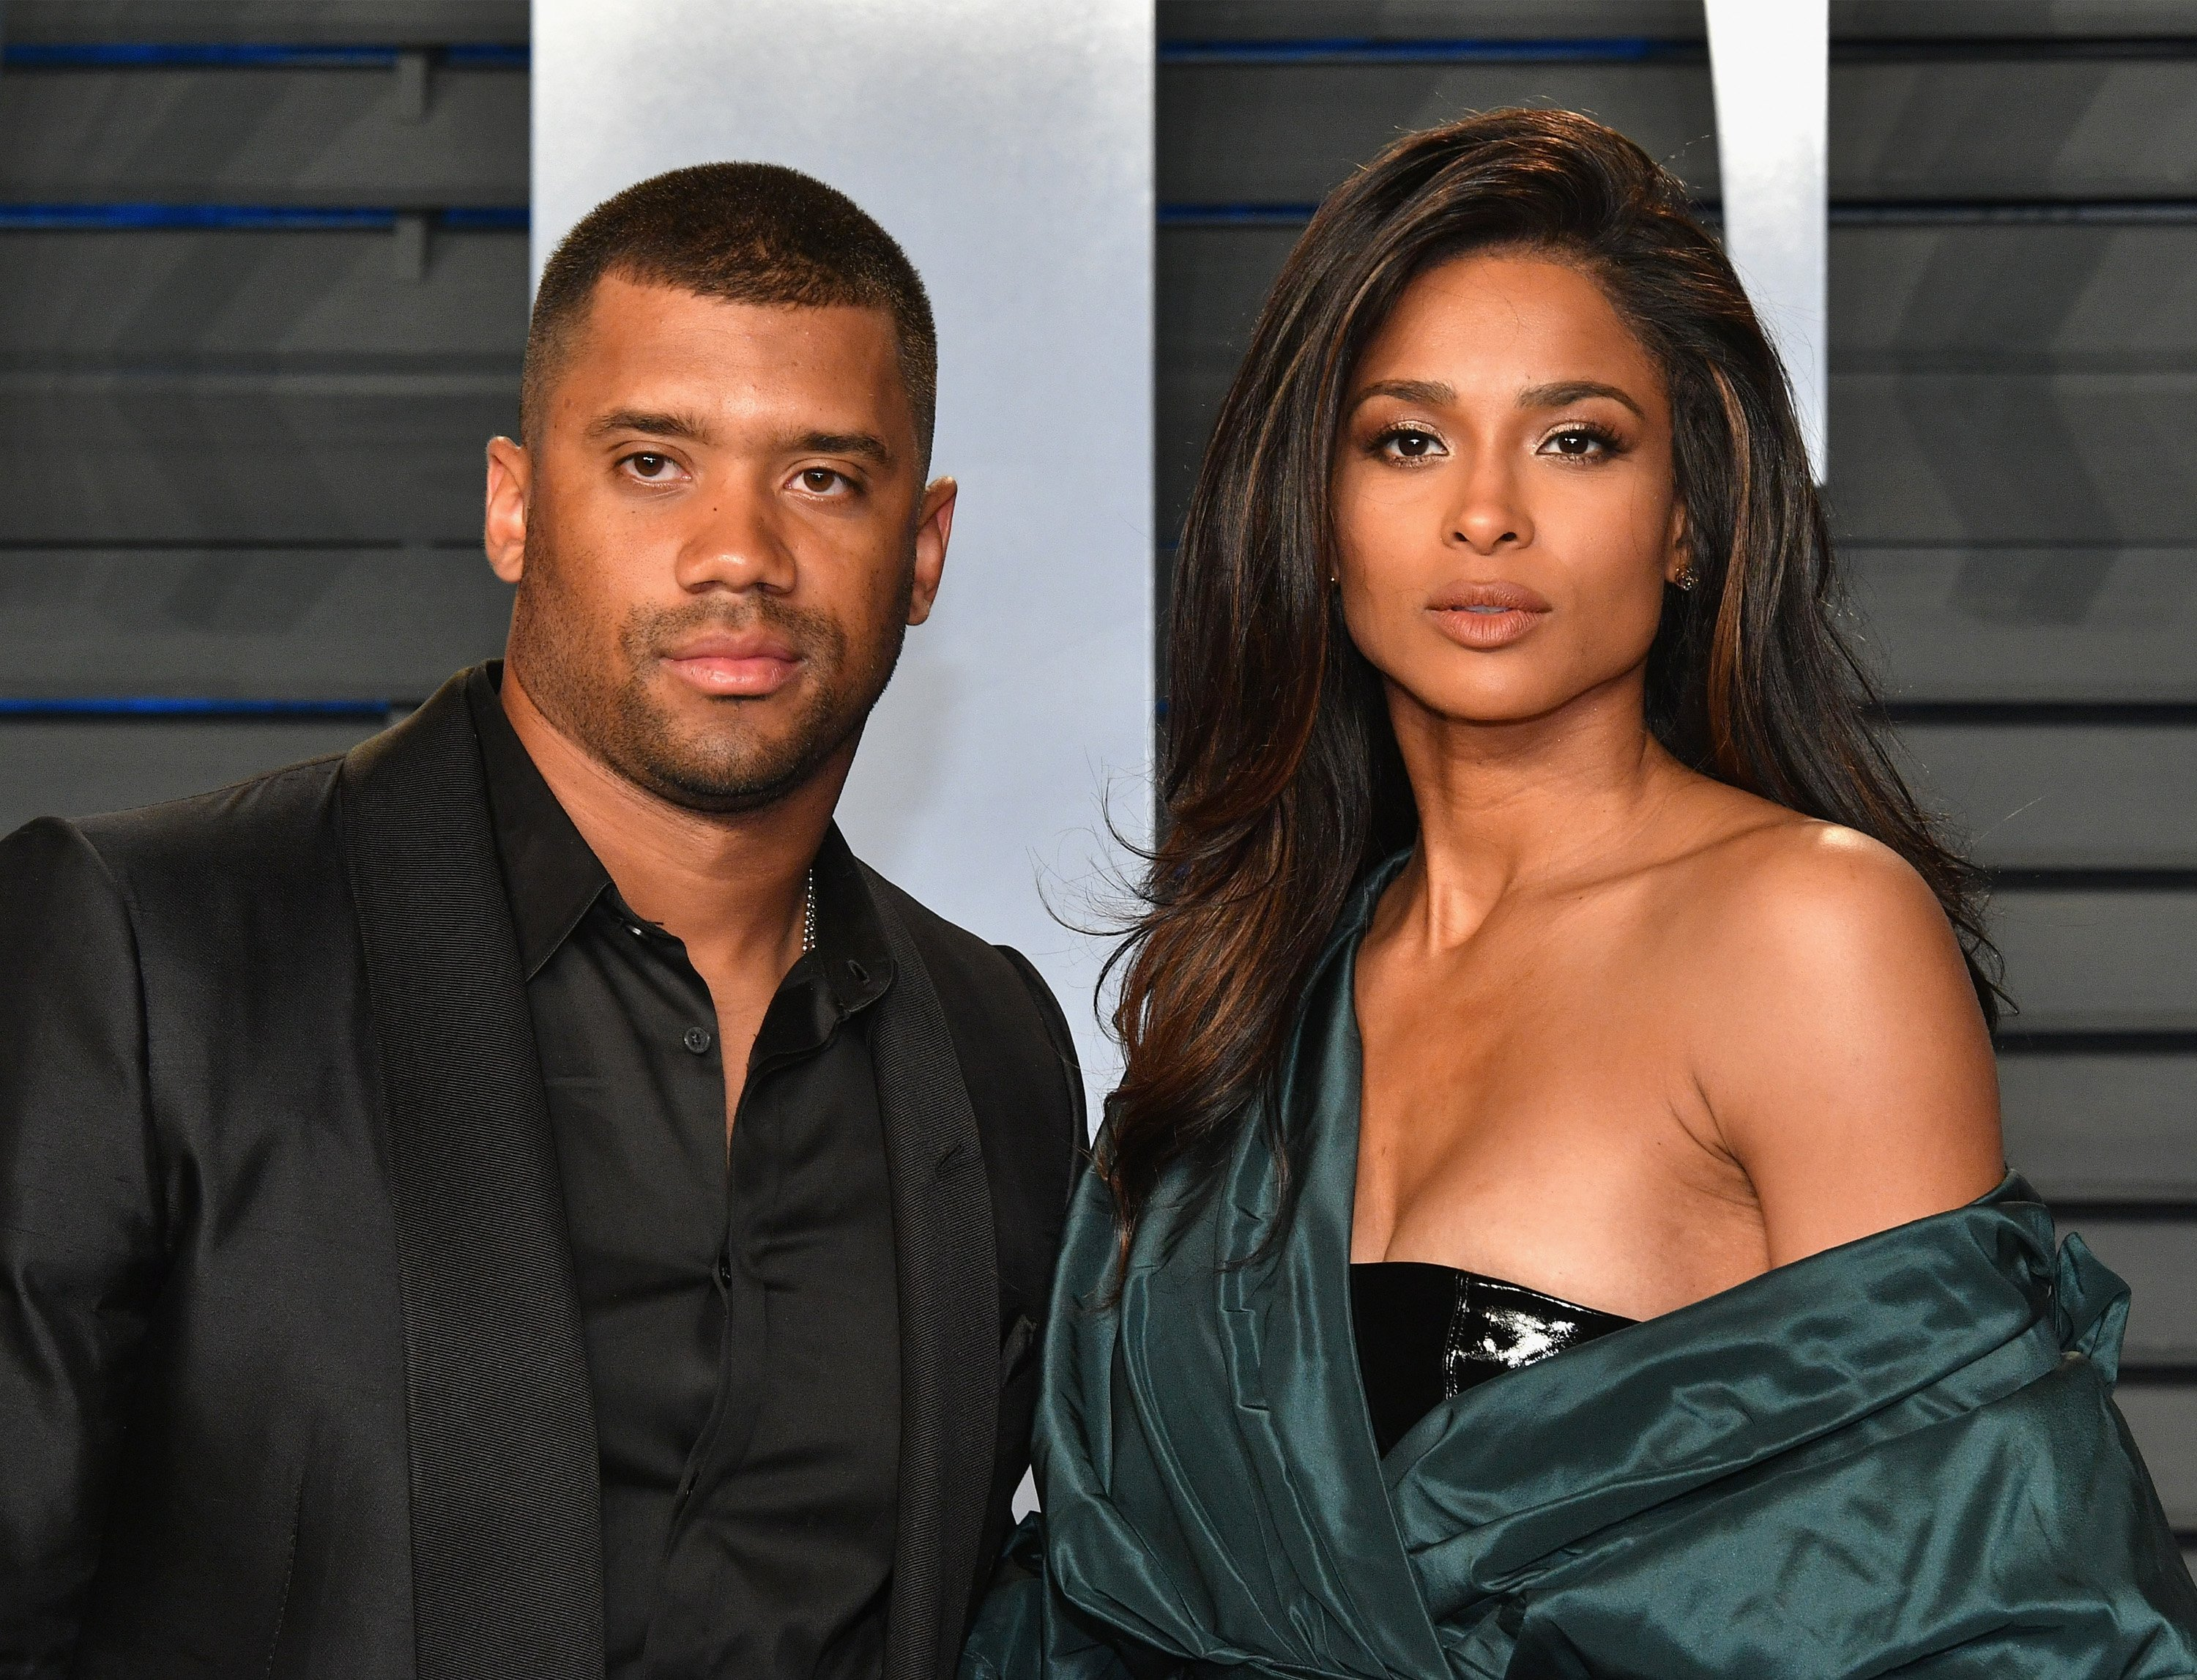 Russell Wilson and Ciara at the 2018 Vanity Fair Oscar Party on March 4, 2018 in Beverly Hills, California. | Photo: Getty Images